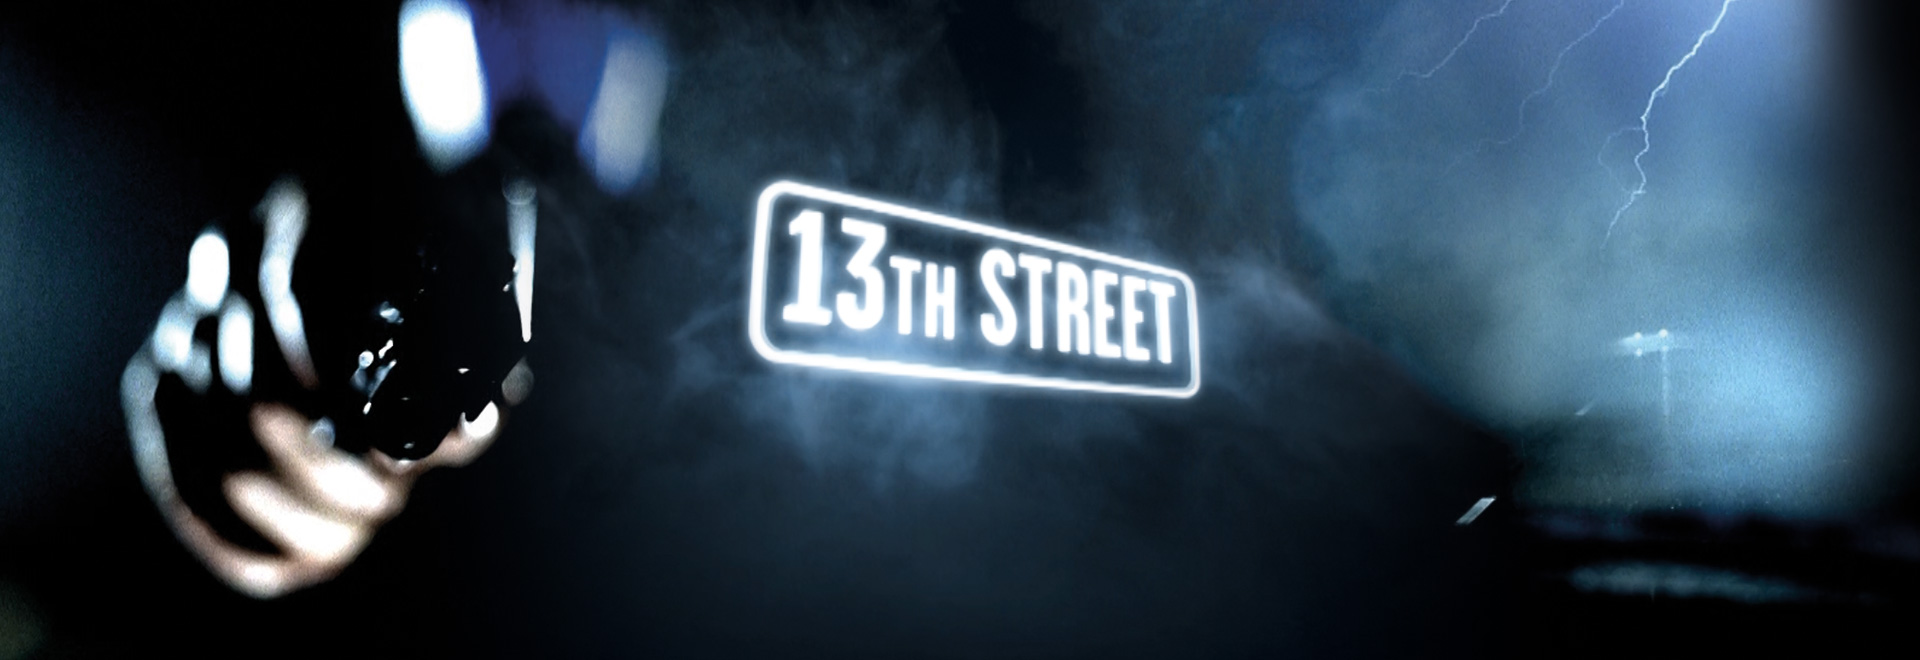 js-filmproduction-postproduction-design-13thStreeet-Street-collage